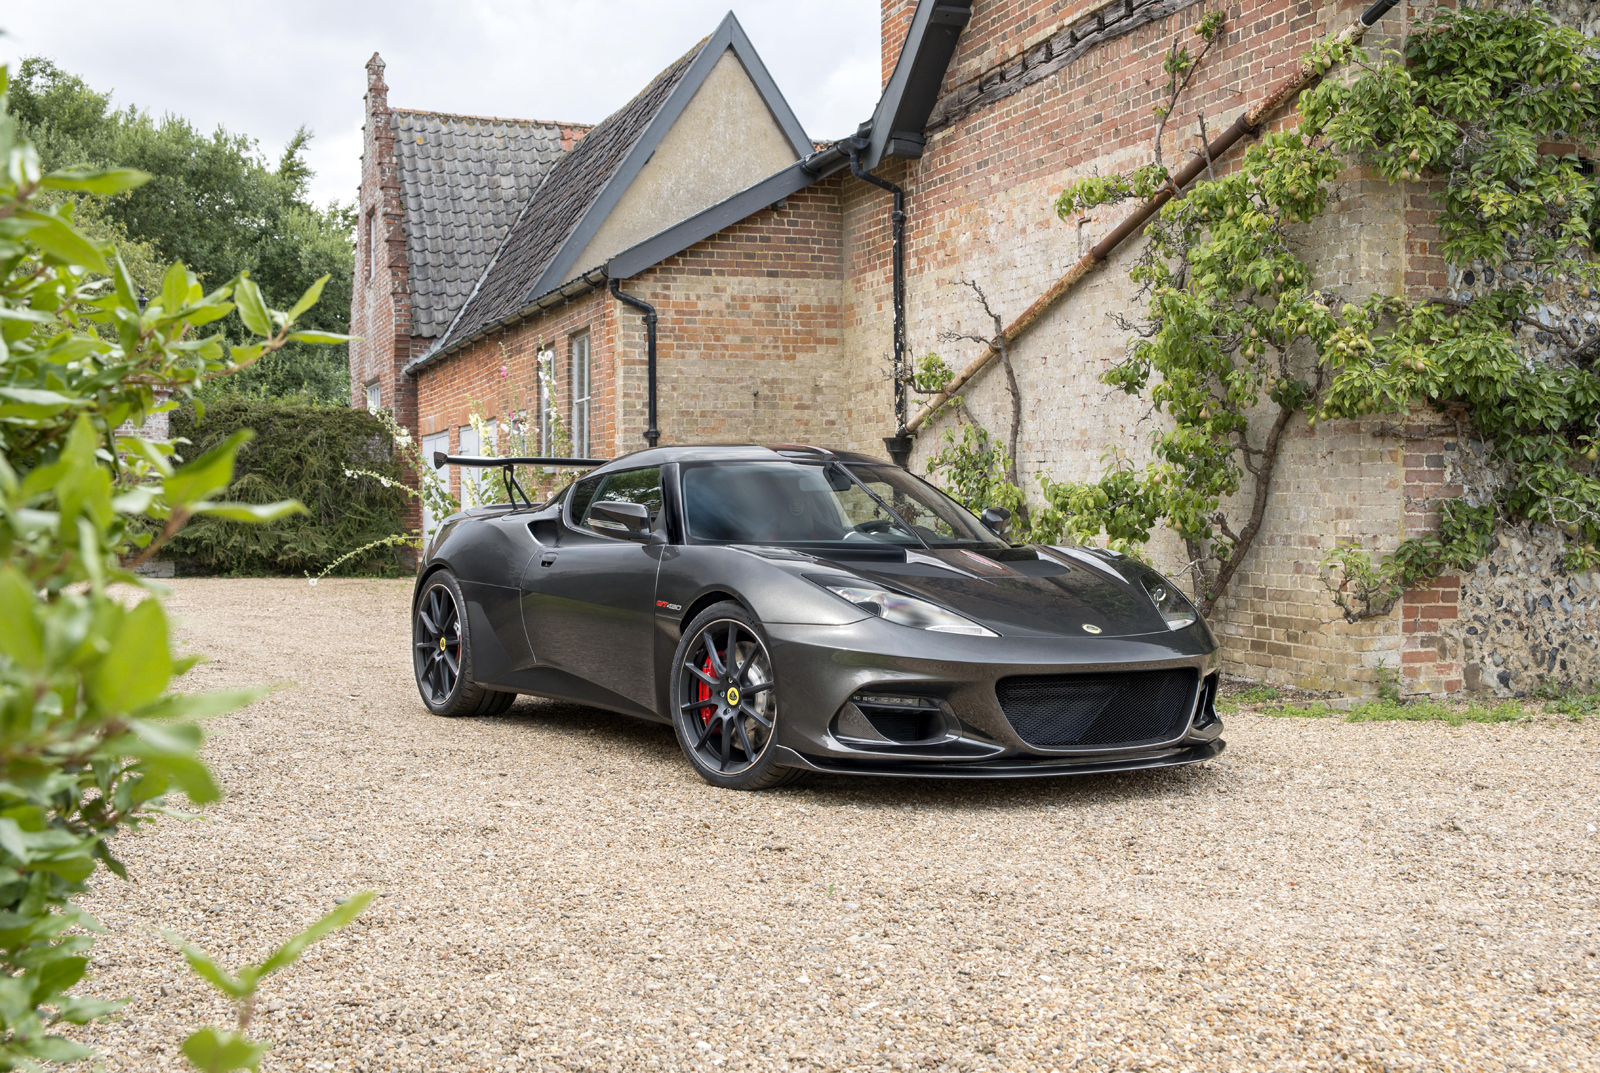 Lotus Evora GT430 is the most powerful road Lotus ever